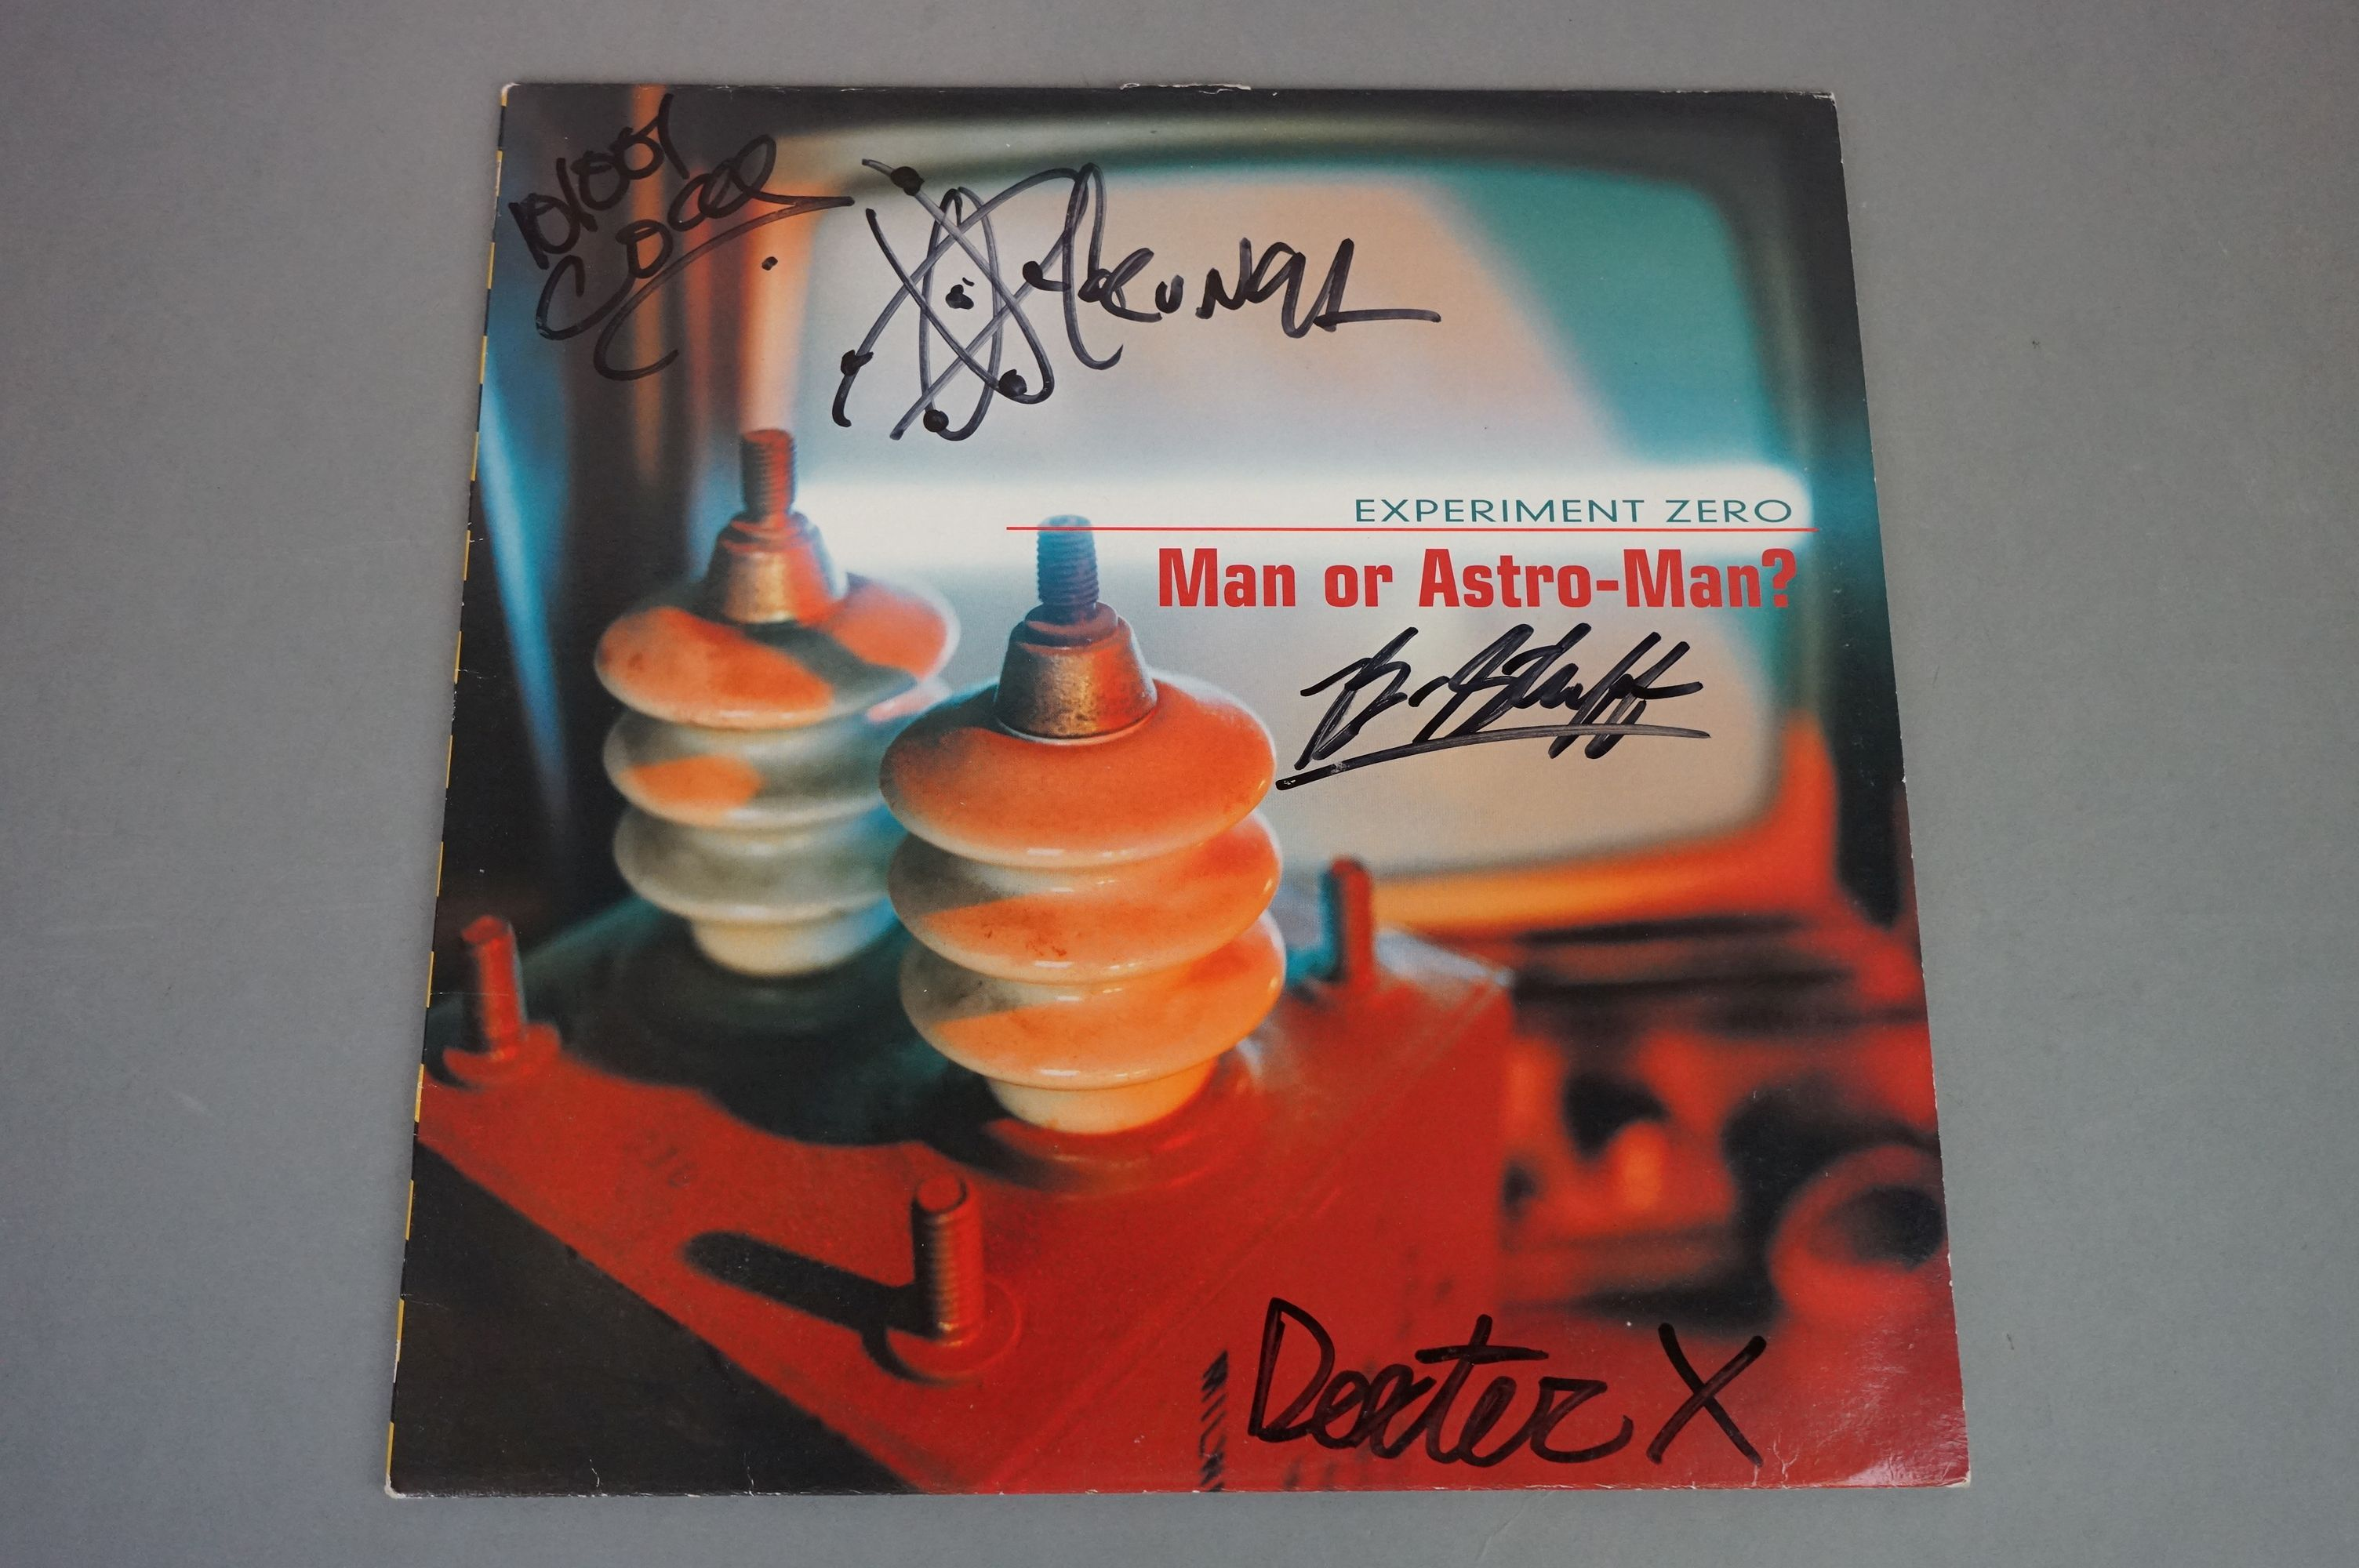 Signed Vinyl - Man Or Astro Man? Experiment Zero LP on Louder 12, yellow vinyl, some damage to